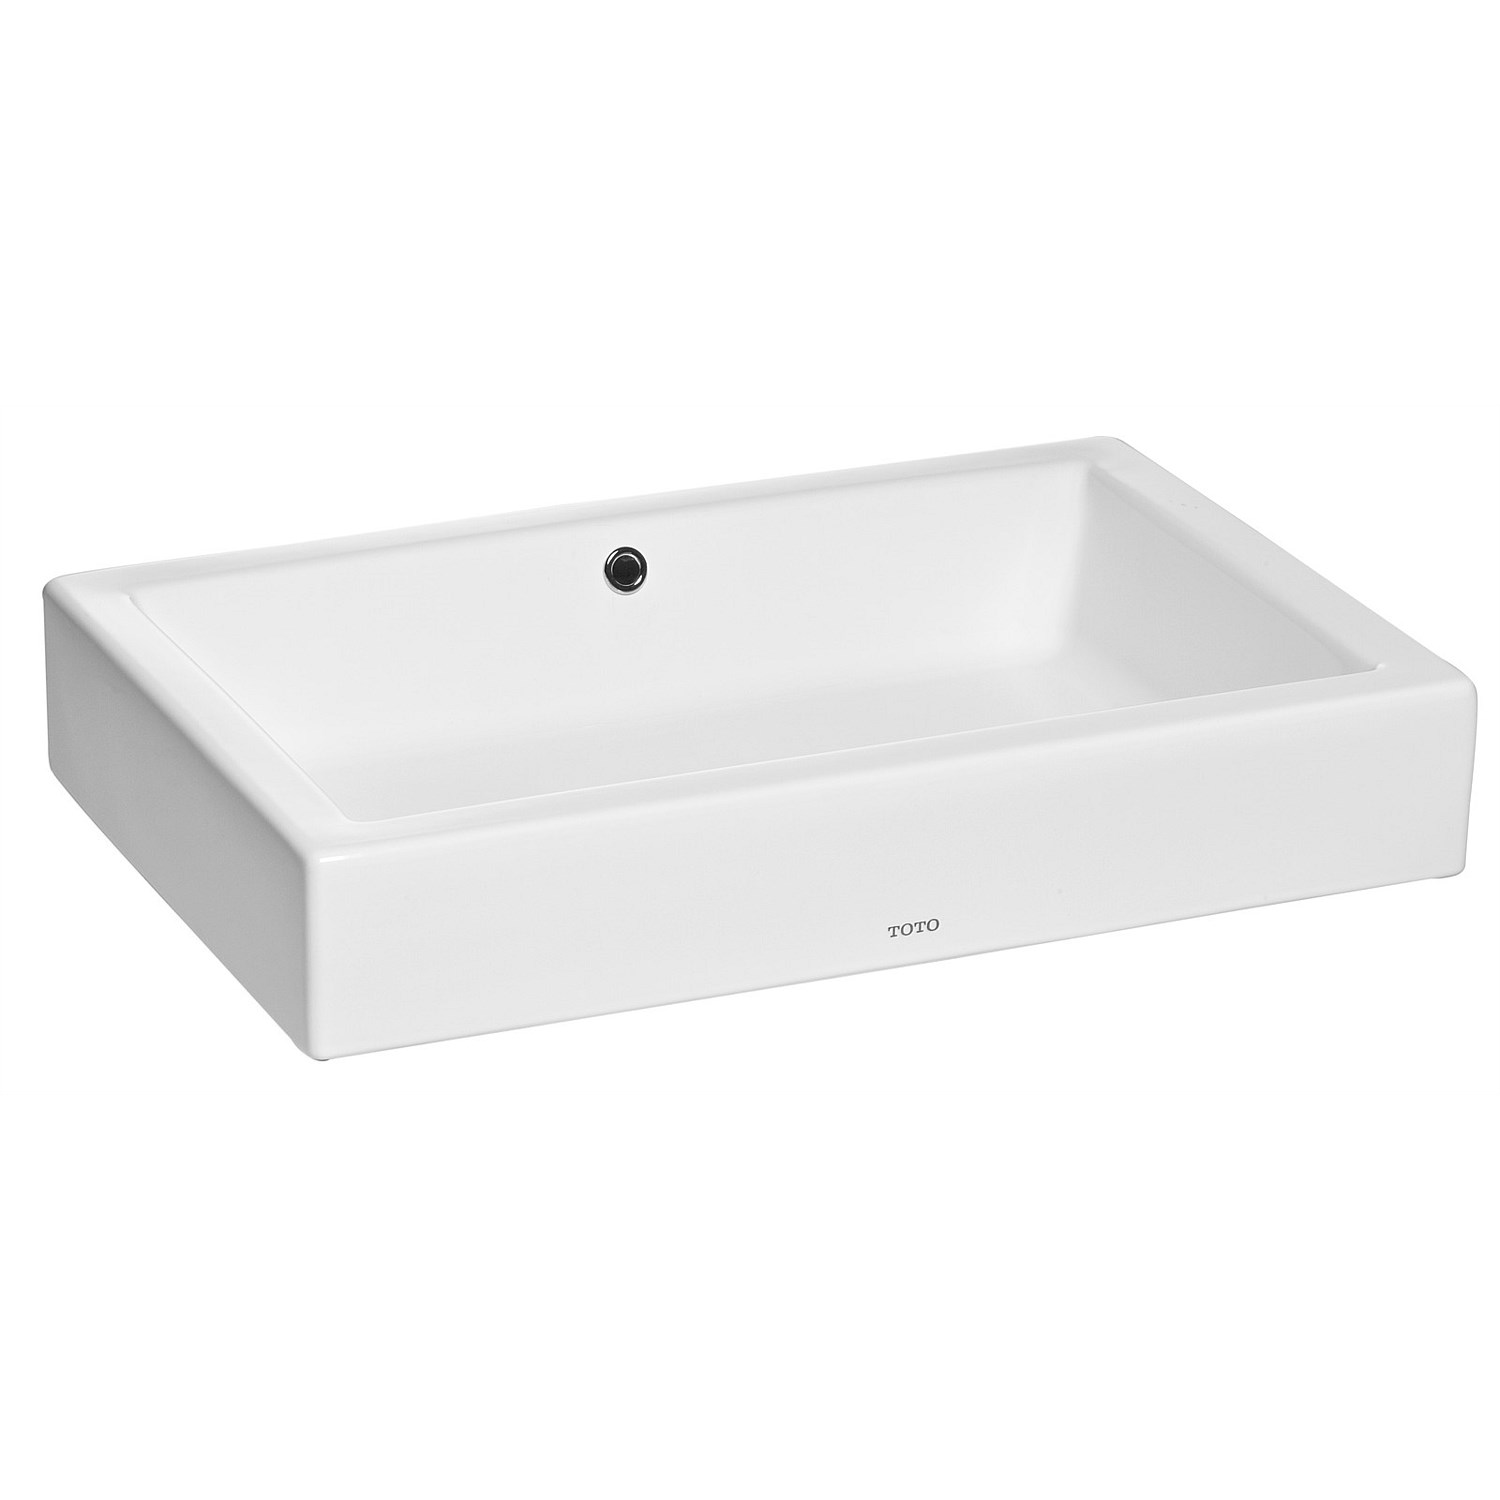 Counter-Tops and Vessels - Toto Santo Rectangle Counter Top Basin